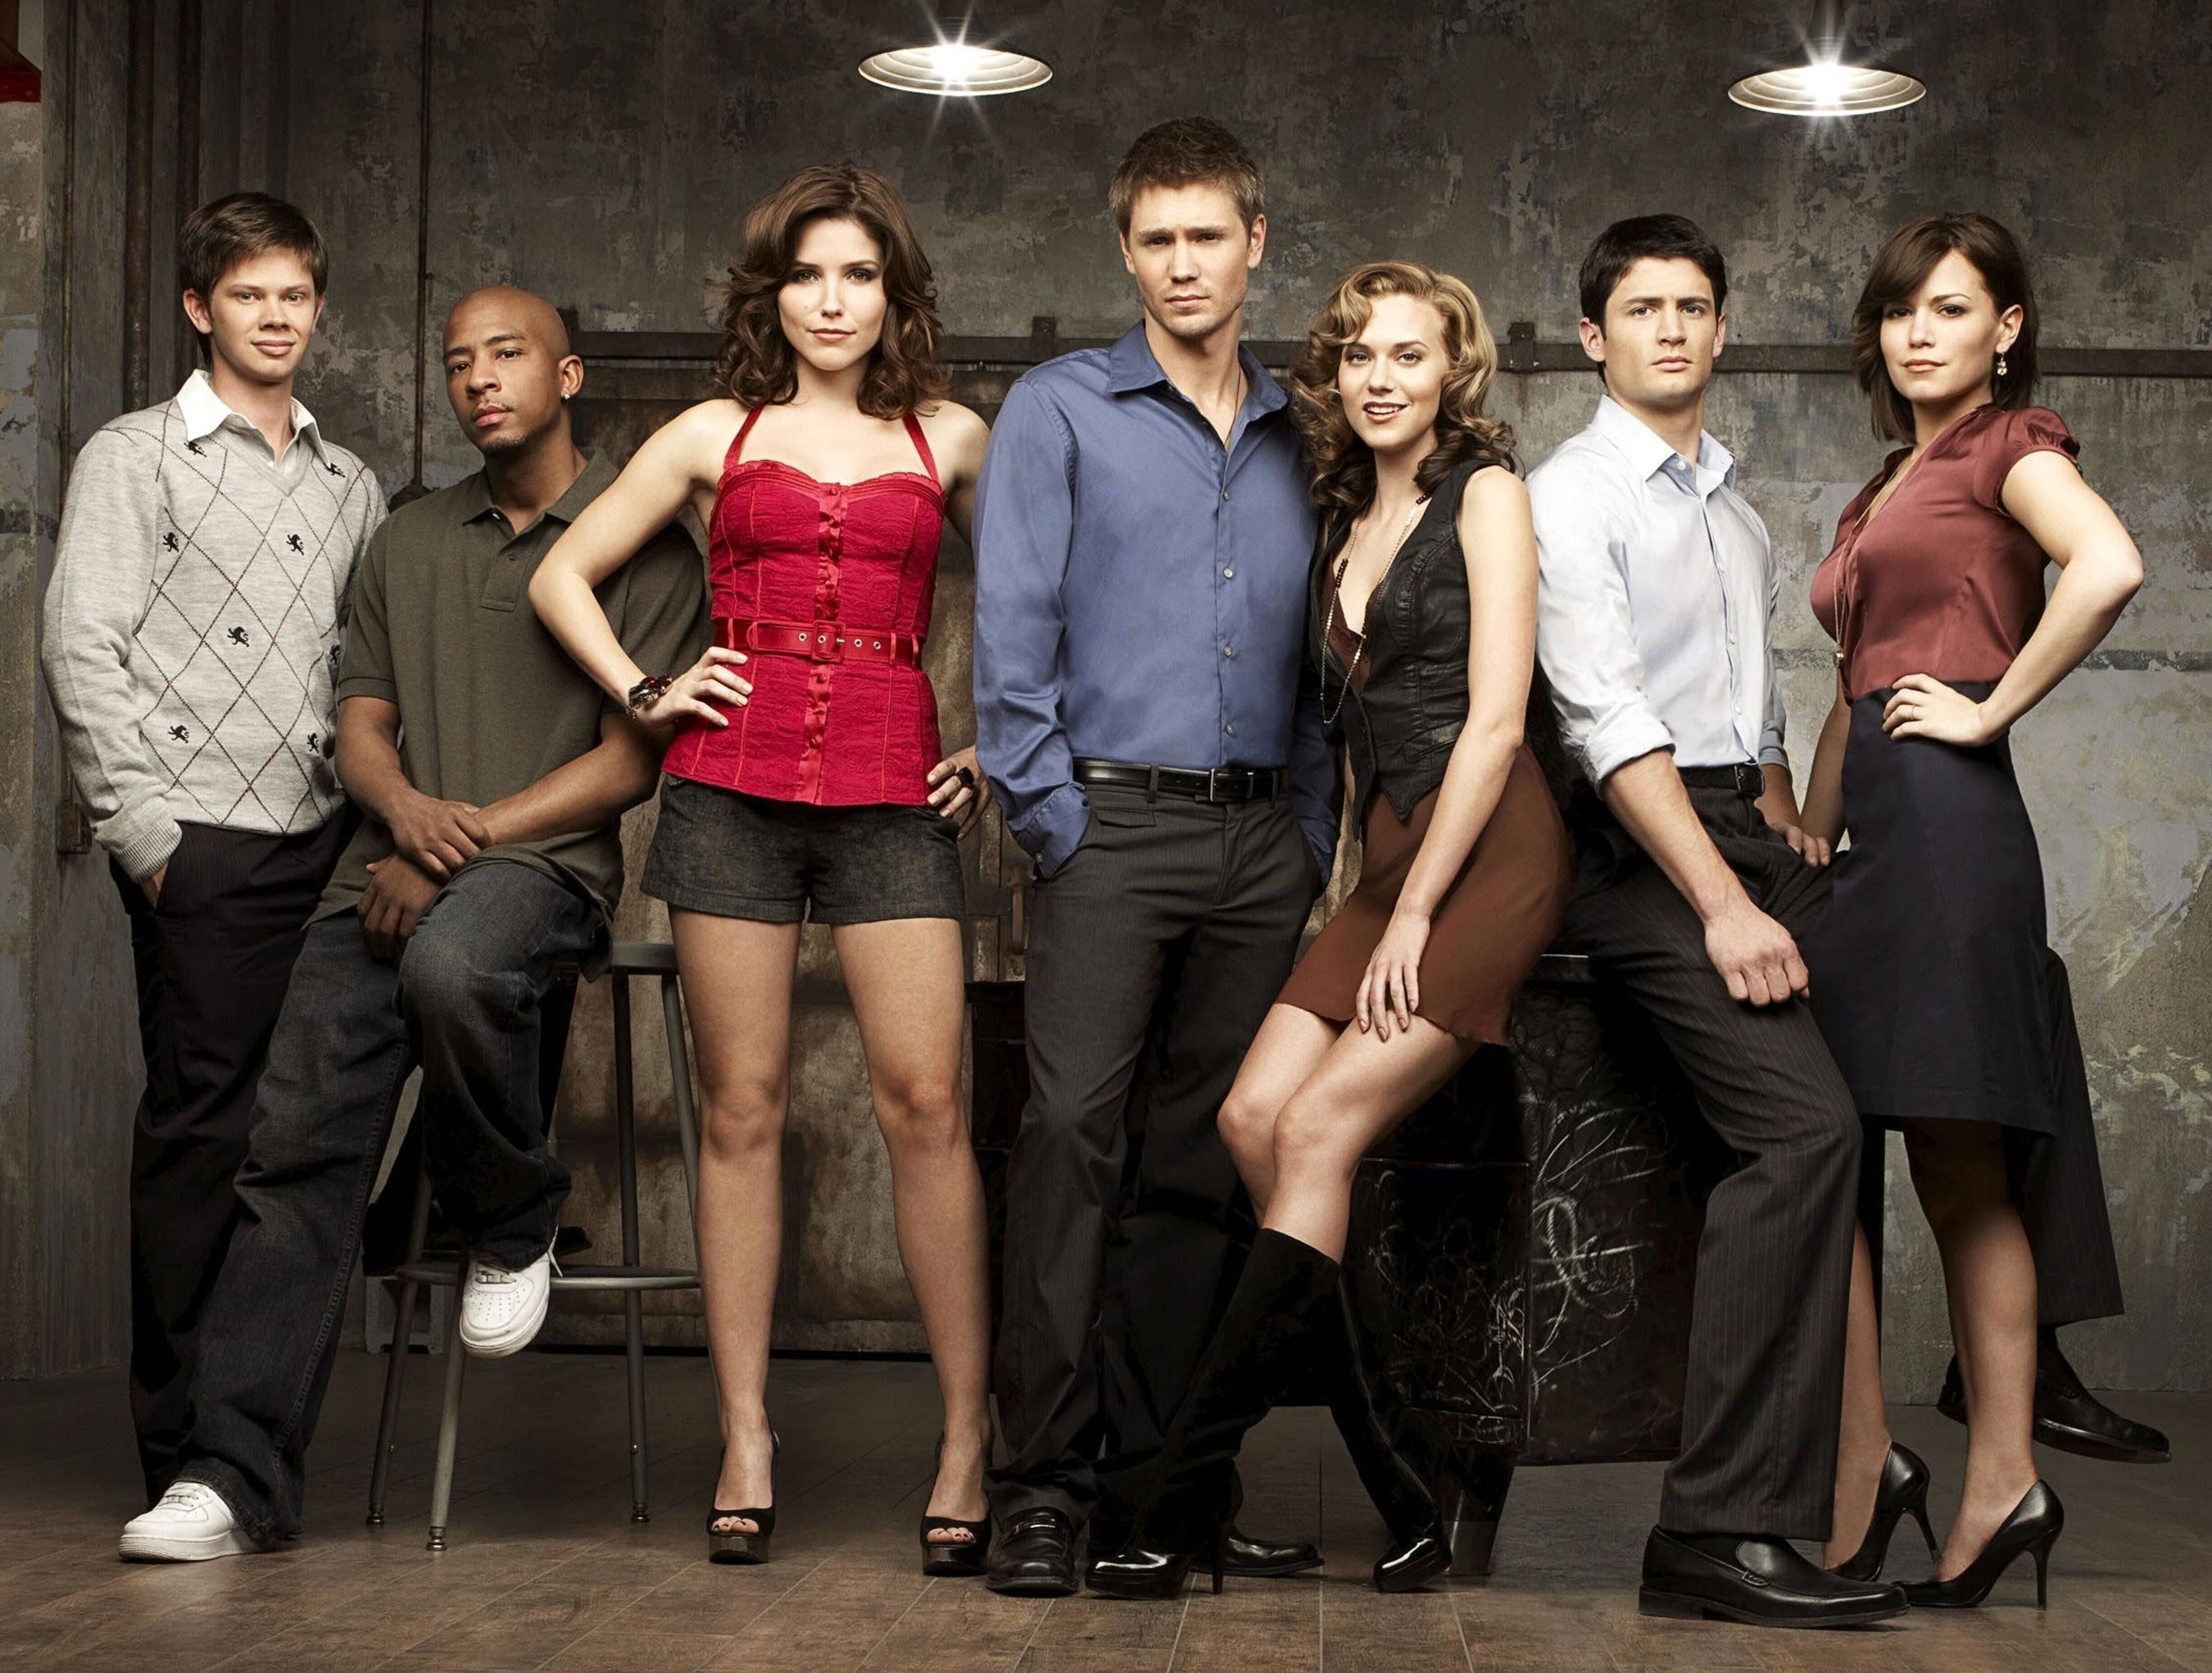 ONE TREE HILL, Lee Norris, Antwon Tanner , Sophia Bush, Chad Michael Murray, Hilarie Burton, James Lafferty, Bethany Joy Galeotti,  (Season 5), 2003-,.  © CW / courtesy everett collection